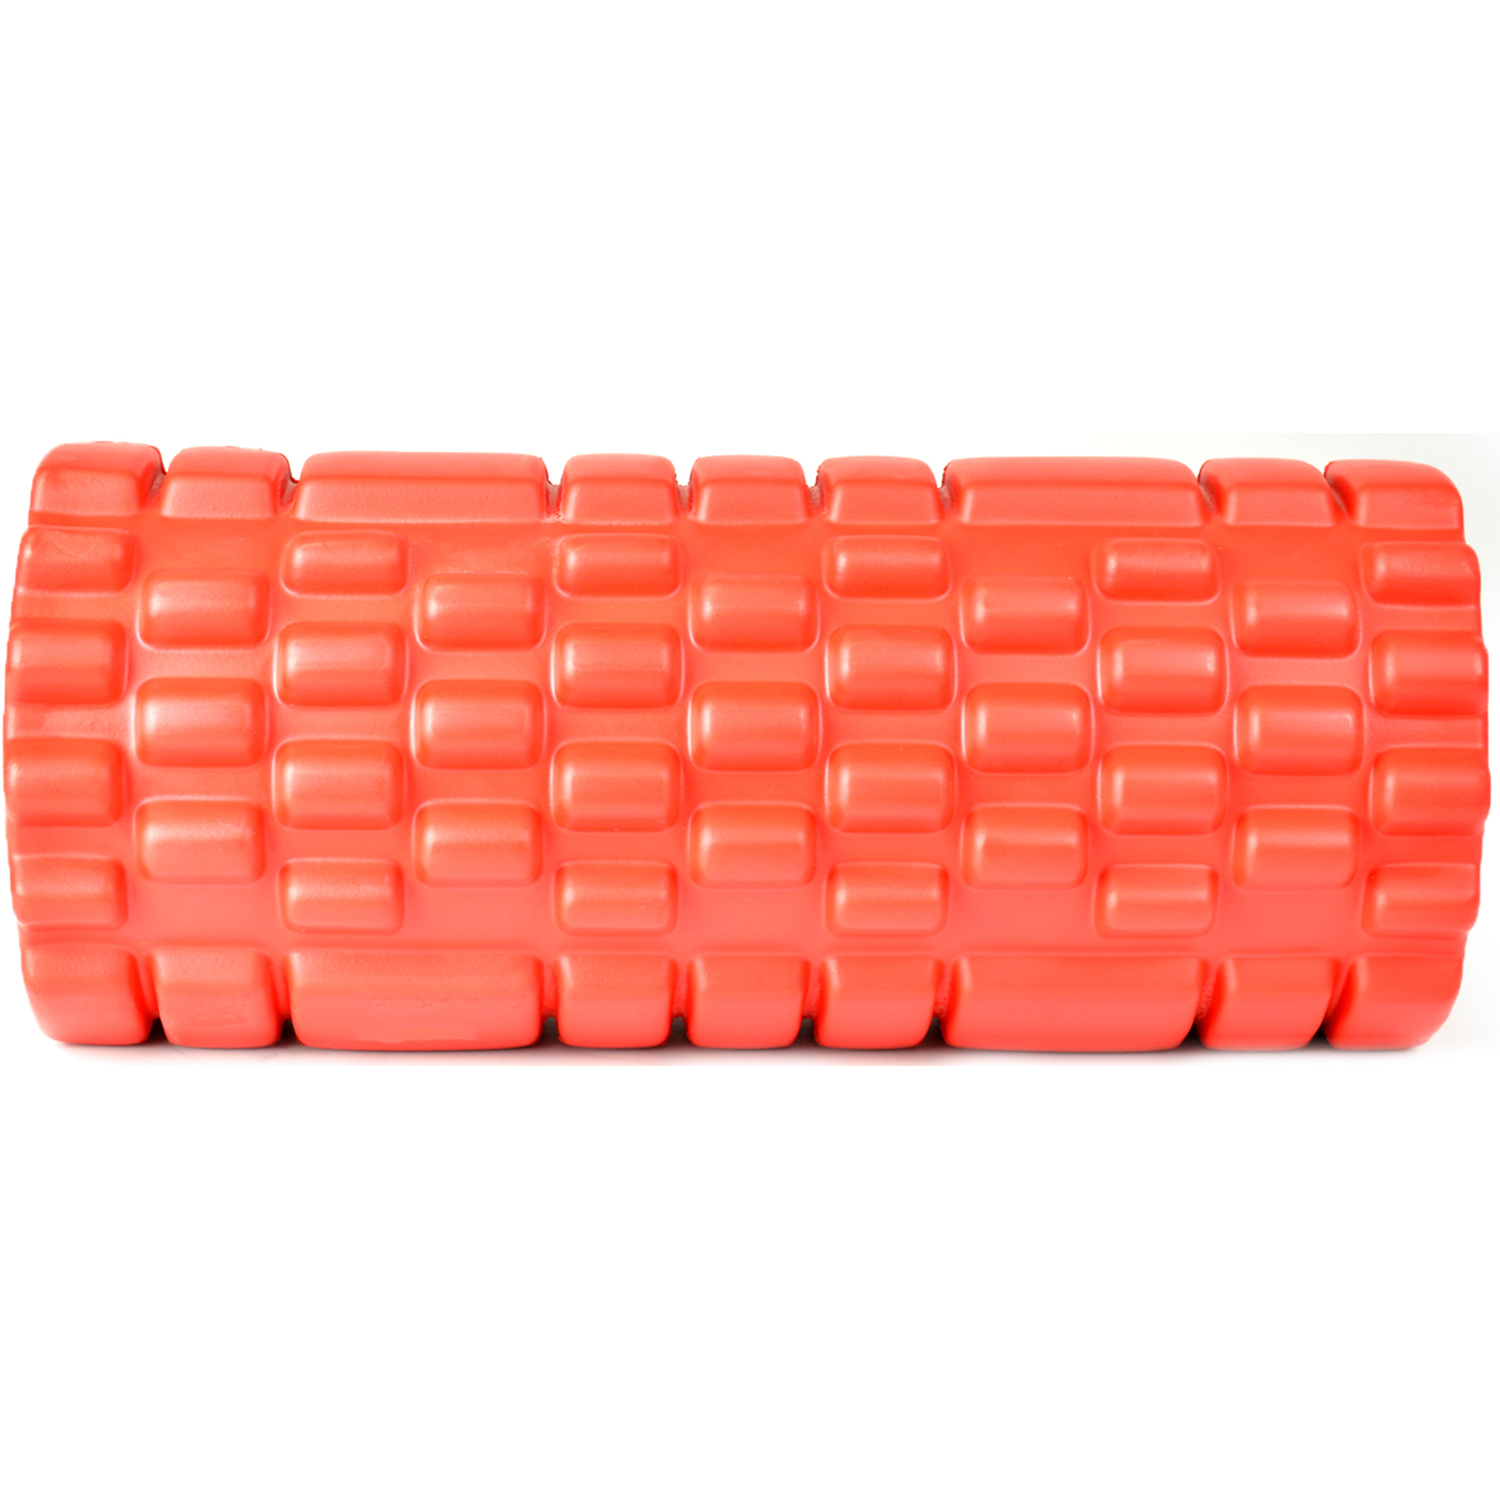 Deep-Tissue-Massage-AccuPoint-Workout-Fitness-Roller thumbnail 7